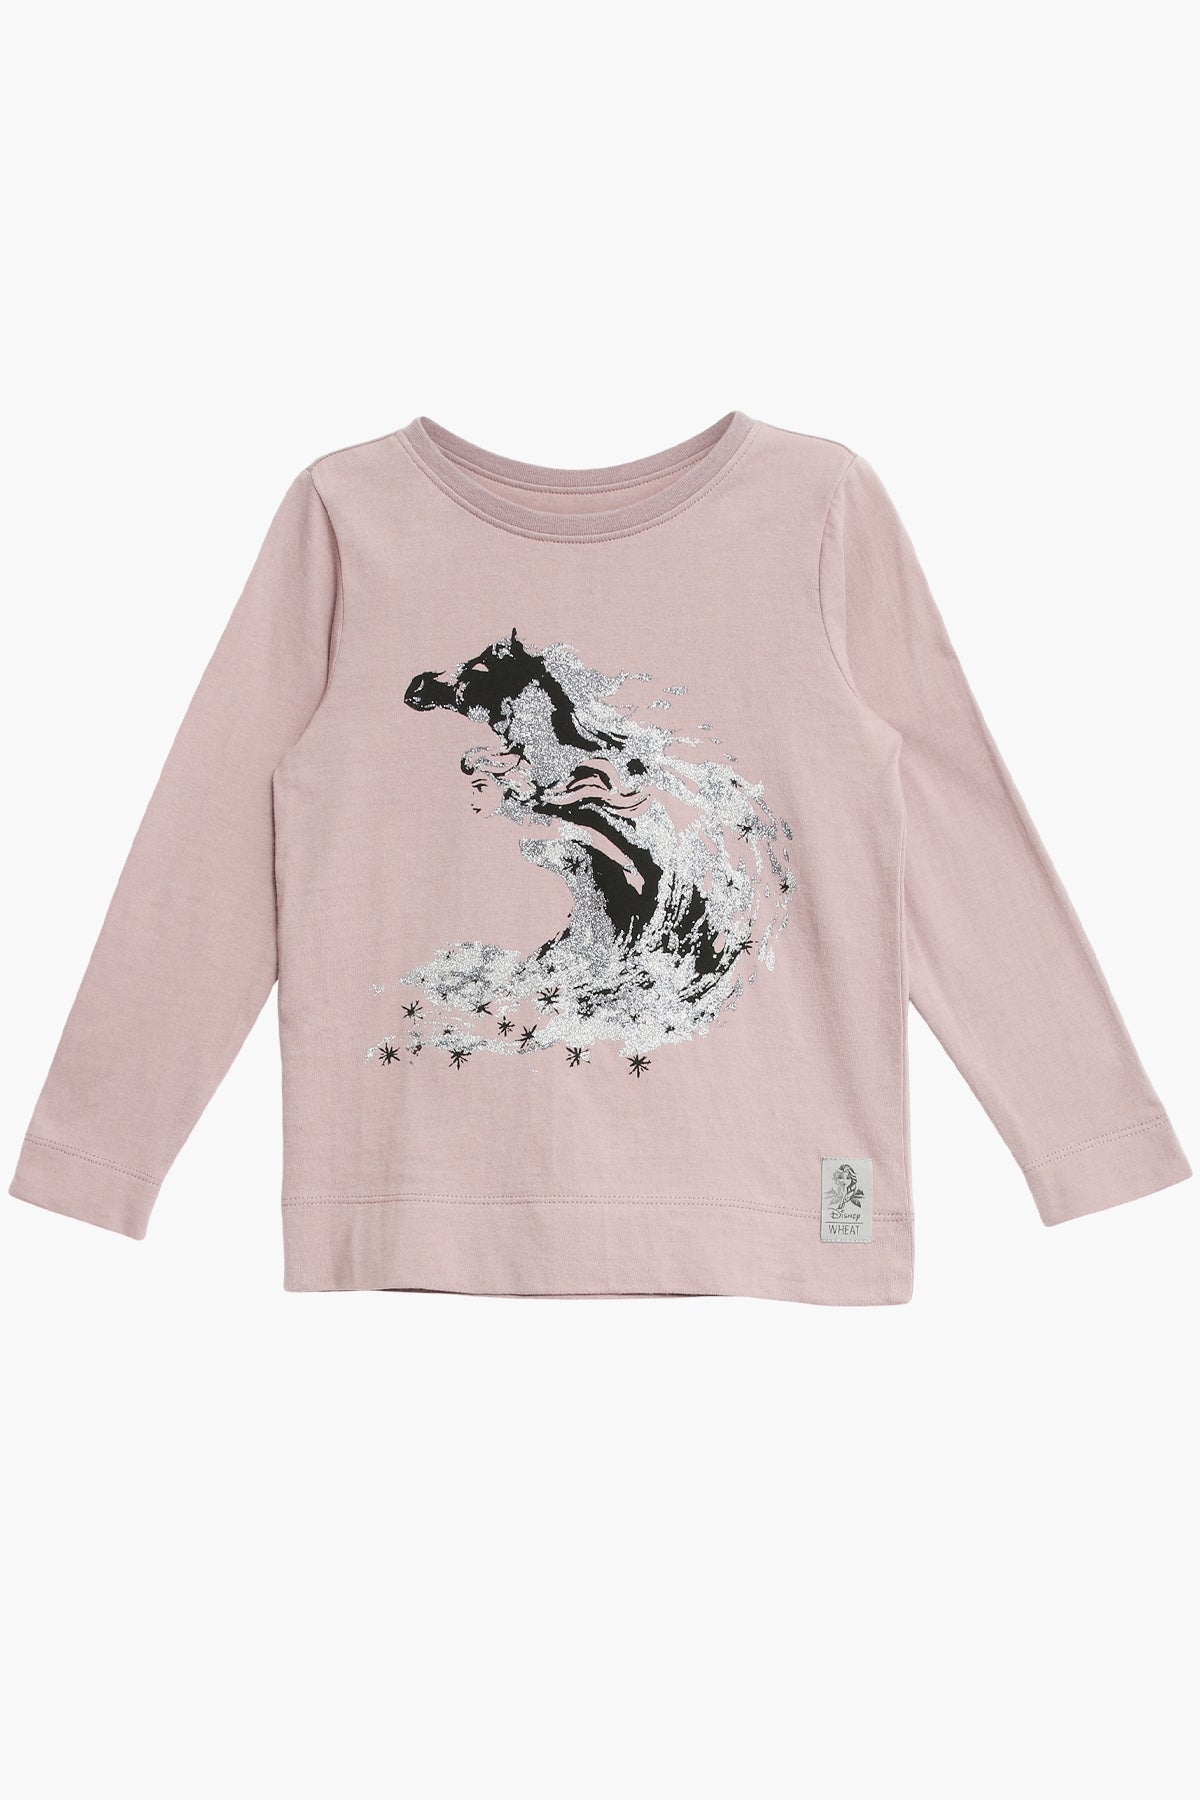 Wheat Disney Frozen Elsa Girls Shirt